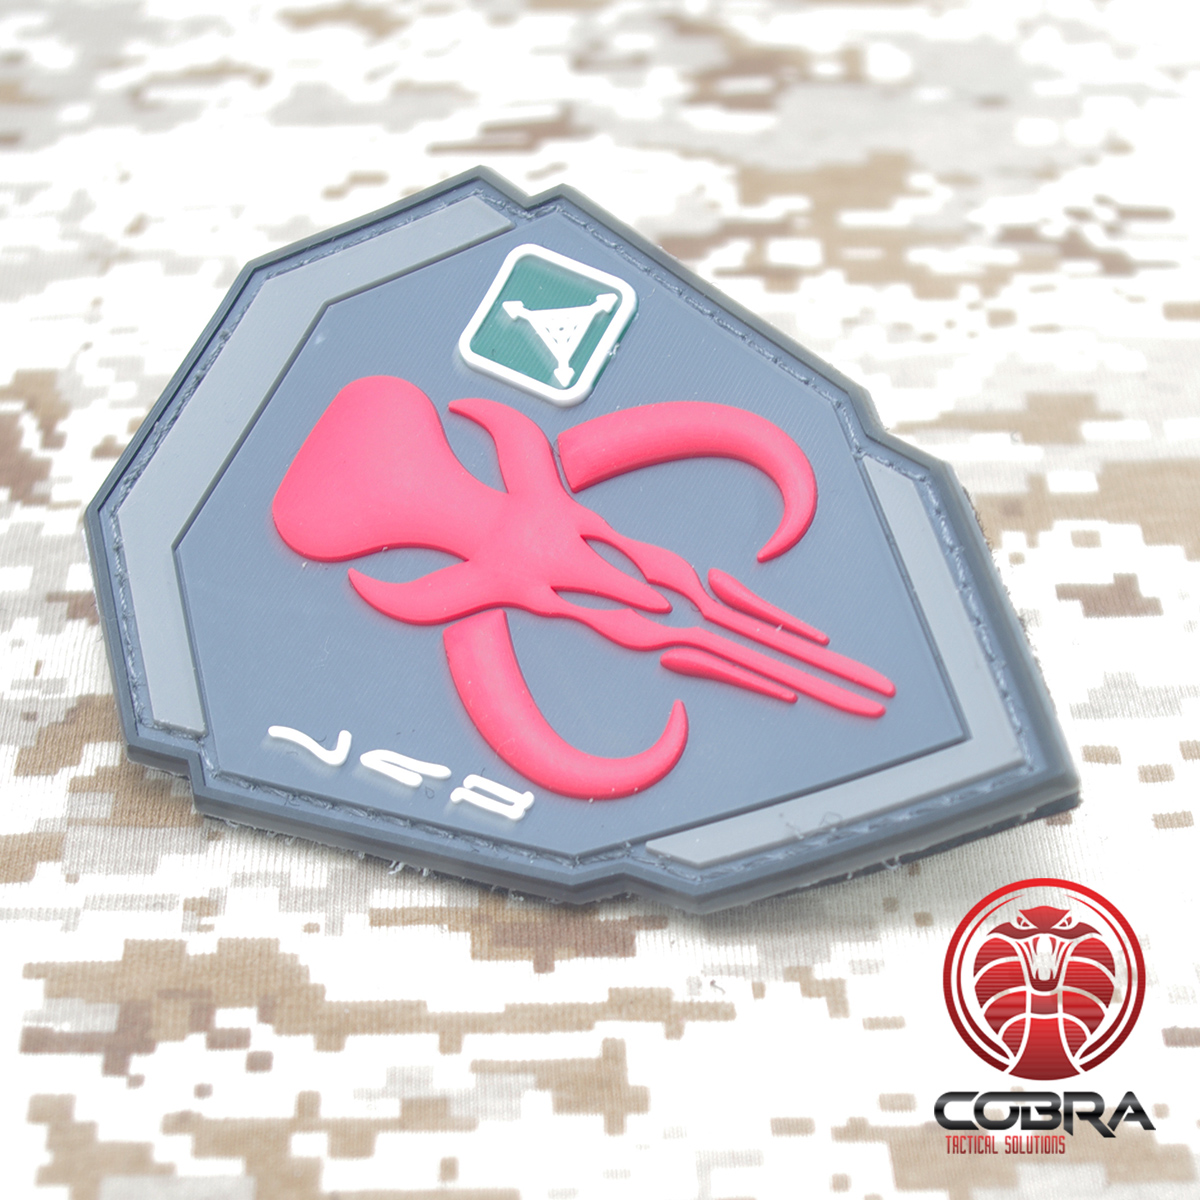 Cobra Tactical Solutions SAS beret skull 3D PVC patch red with Hook /& Loop Airsoft